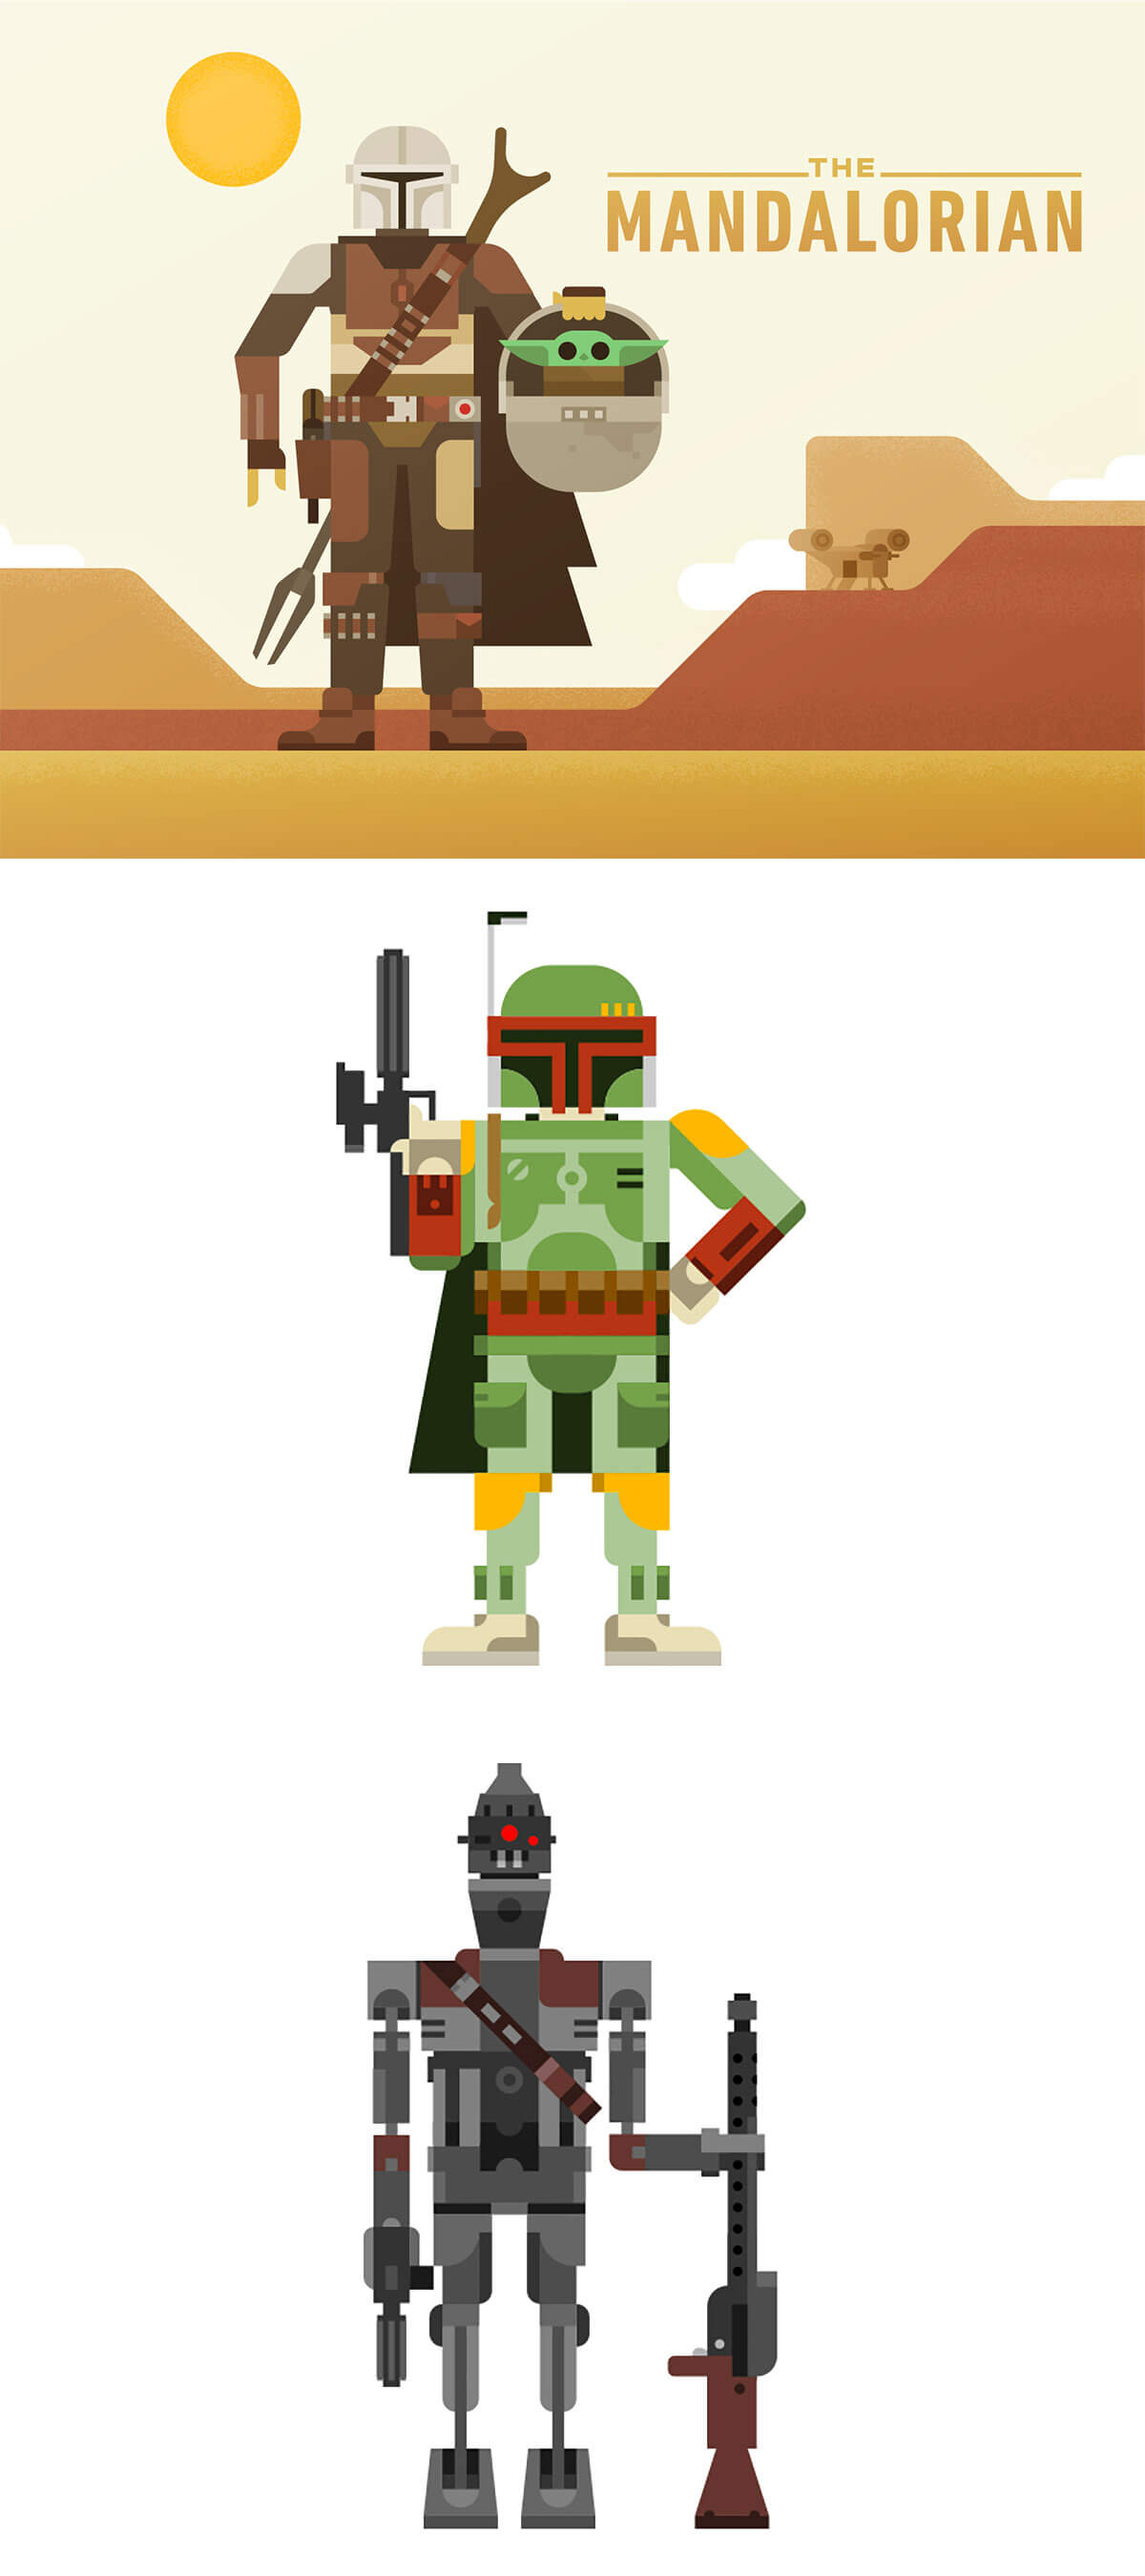 The Mandalorian by Roger Strunk